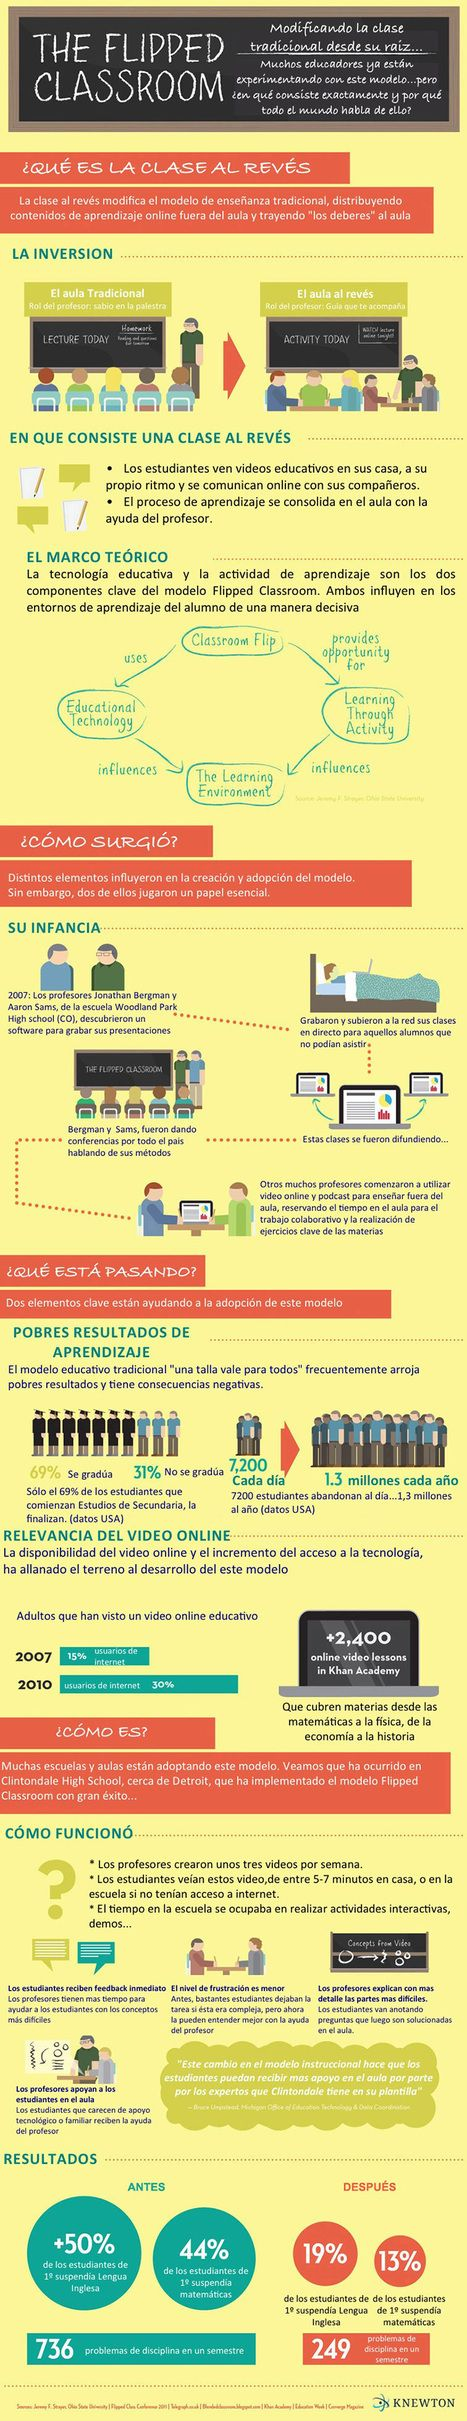 The Flipped Classroom: ¿Qué es la clase al revés? #infografia | ISCom40 | Scoop.it